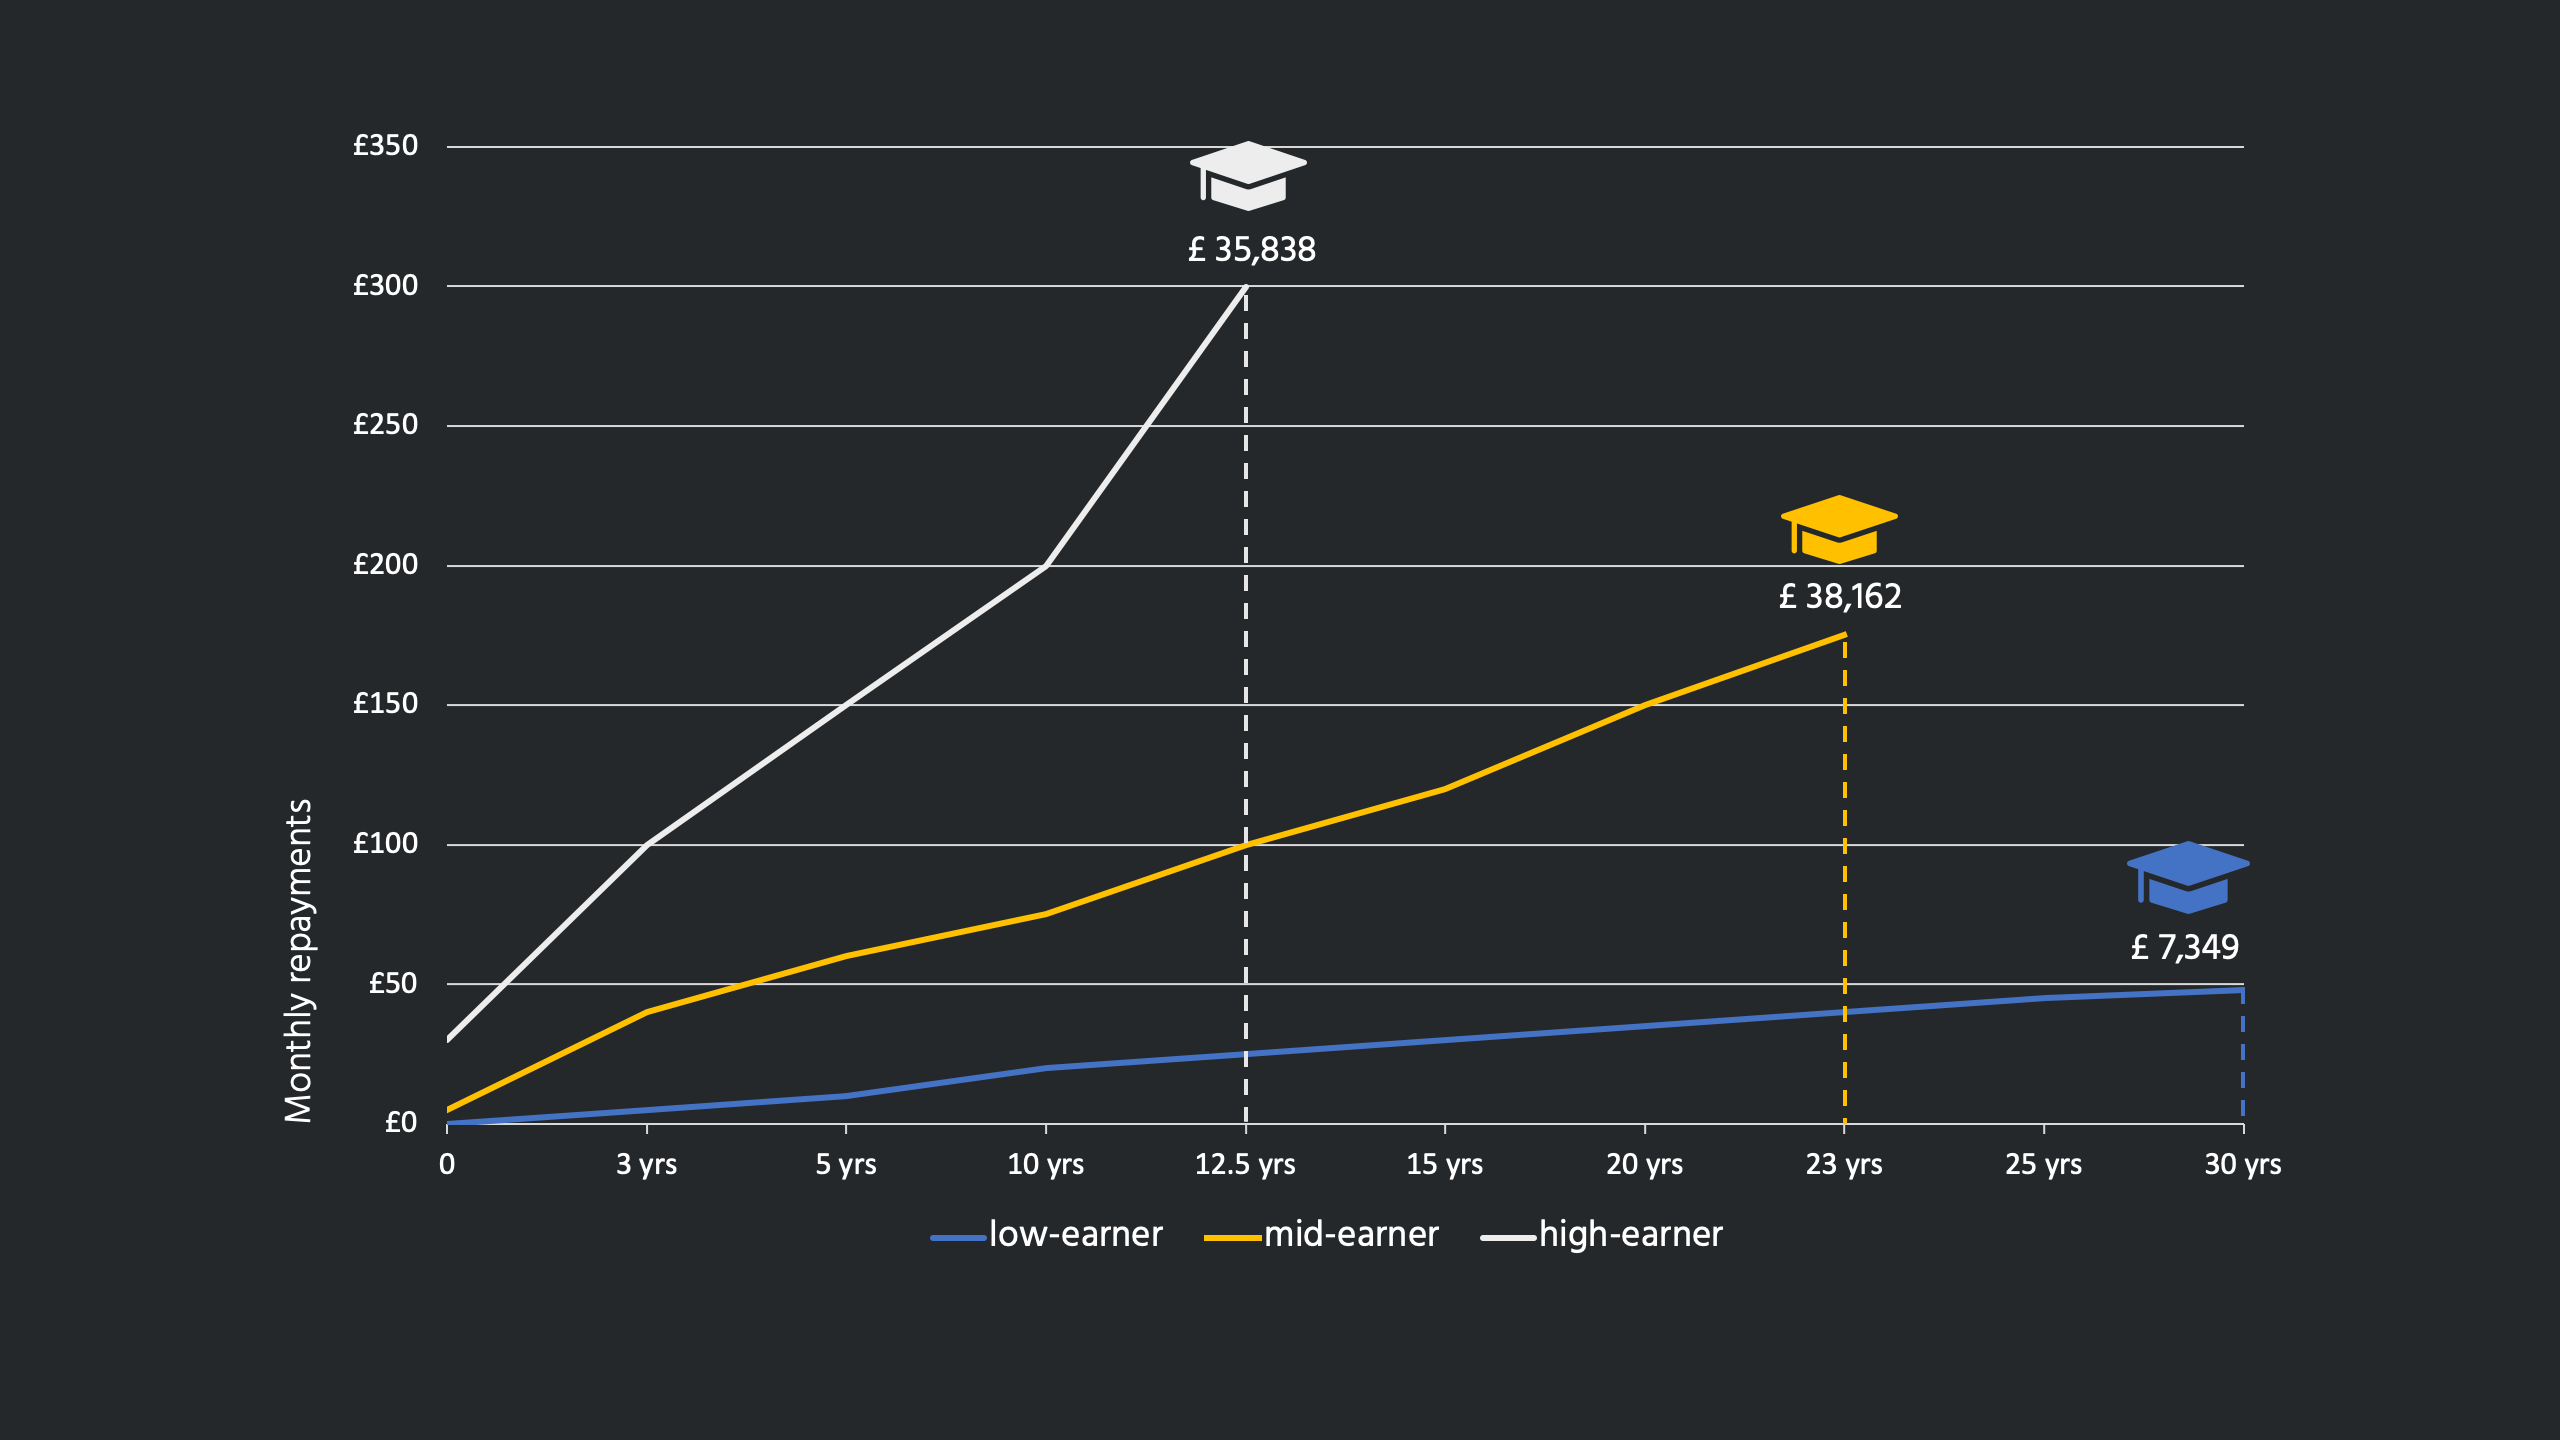 A chart showing the student loan repayment journeys of low-, medium- and high-earning graduates